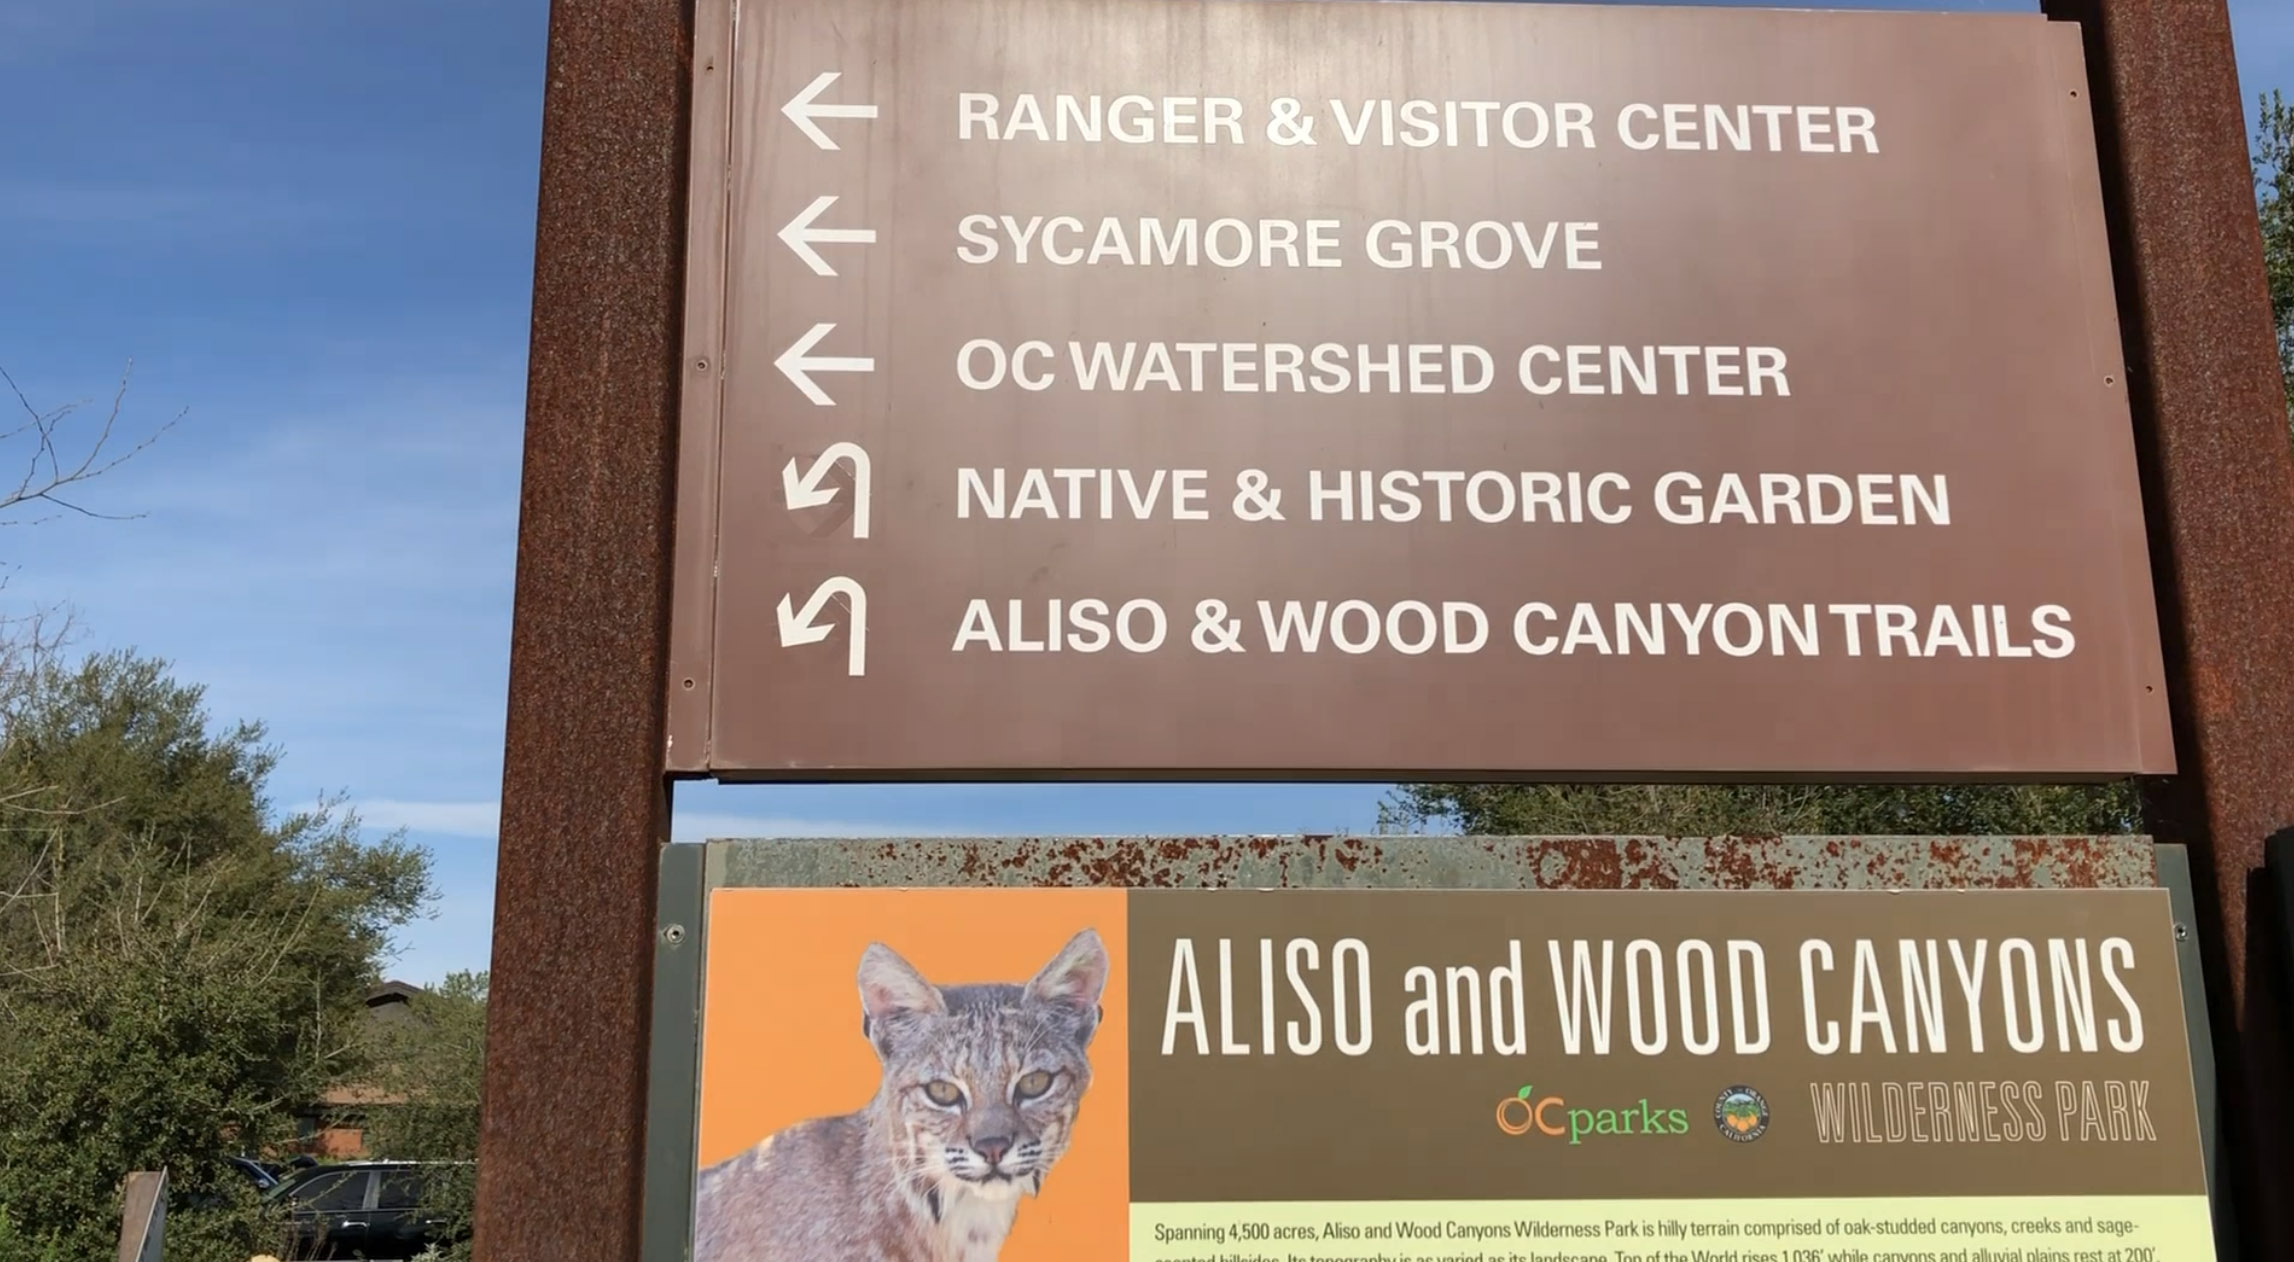 Aliso and Wood Canyon Trail